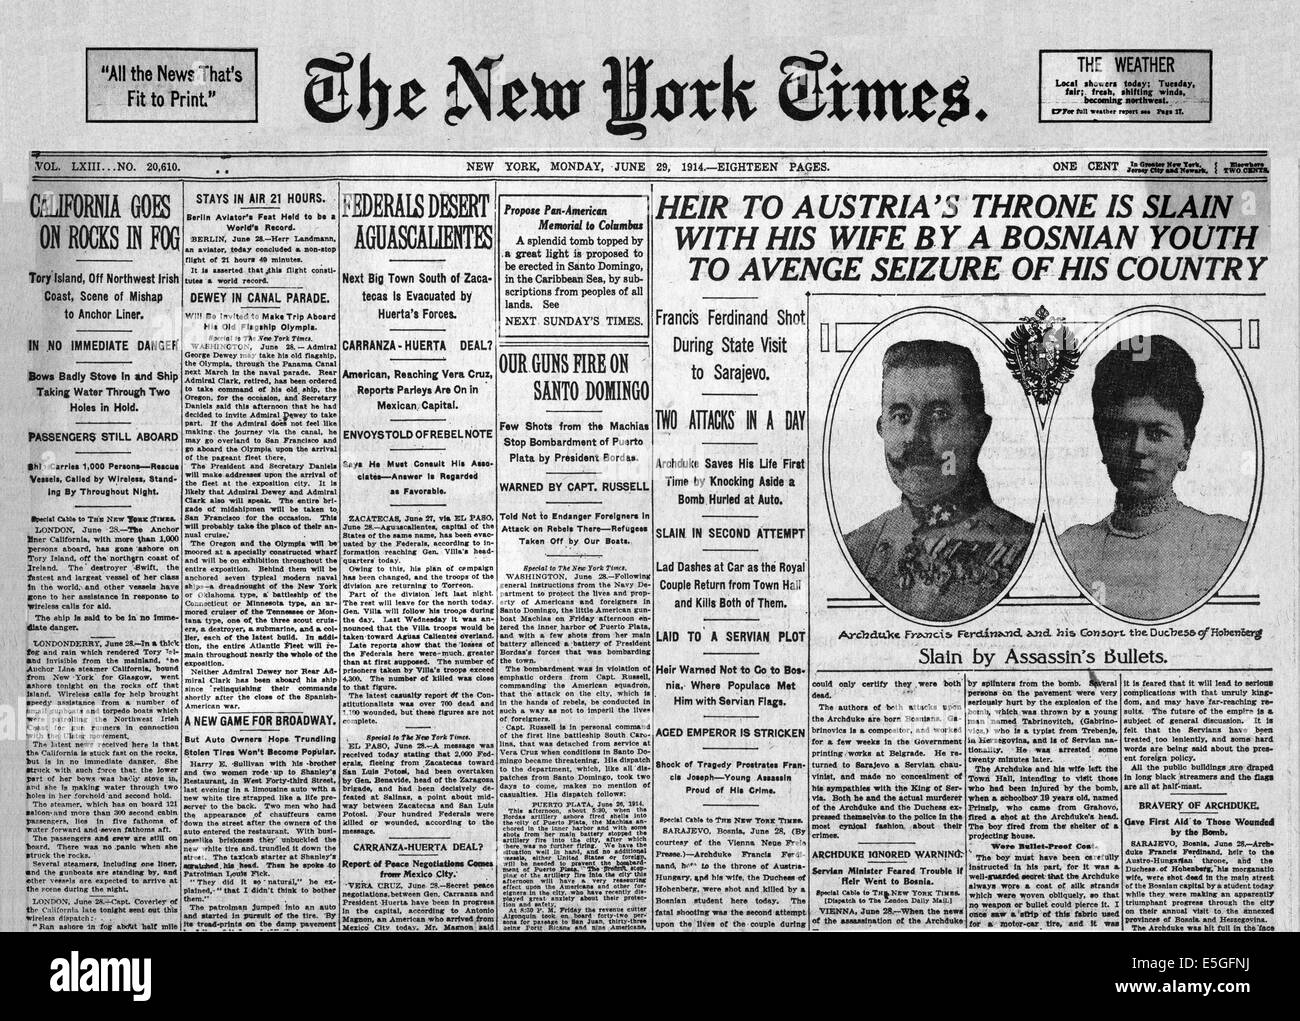 Francois Illas New Tradition: 1914 The New York Times Front Page Reporting Assassination